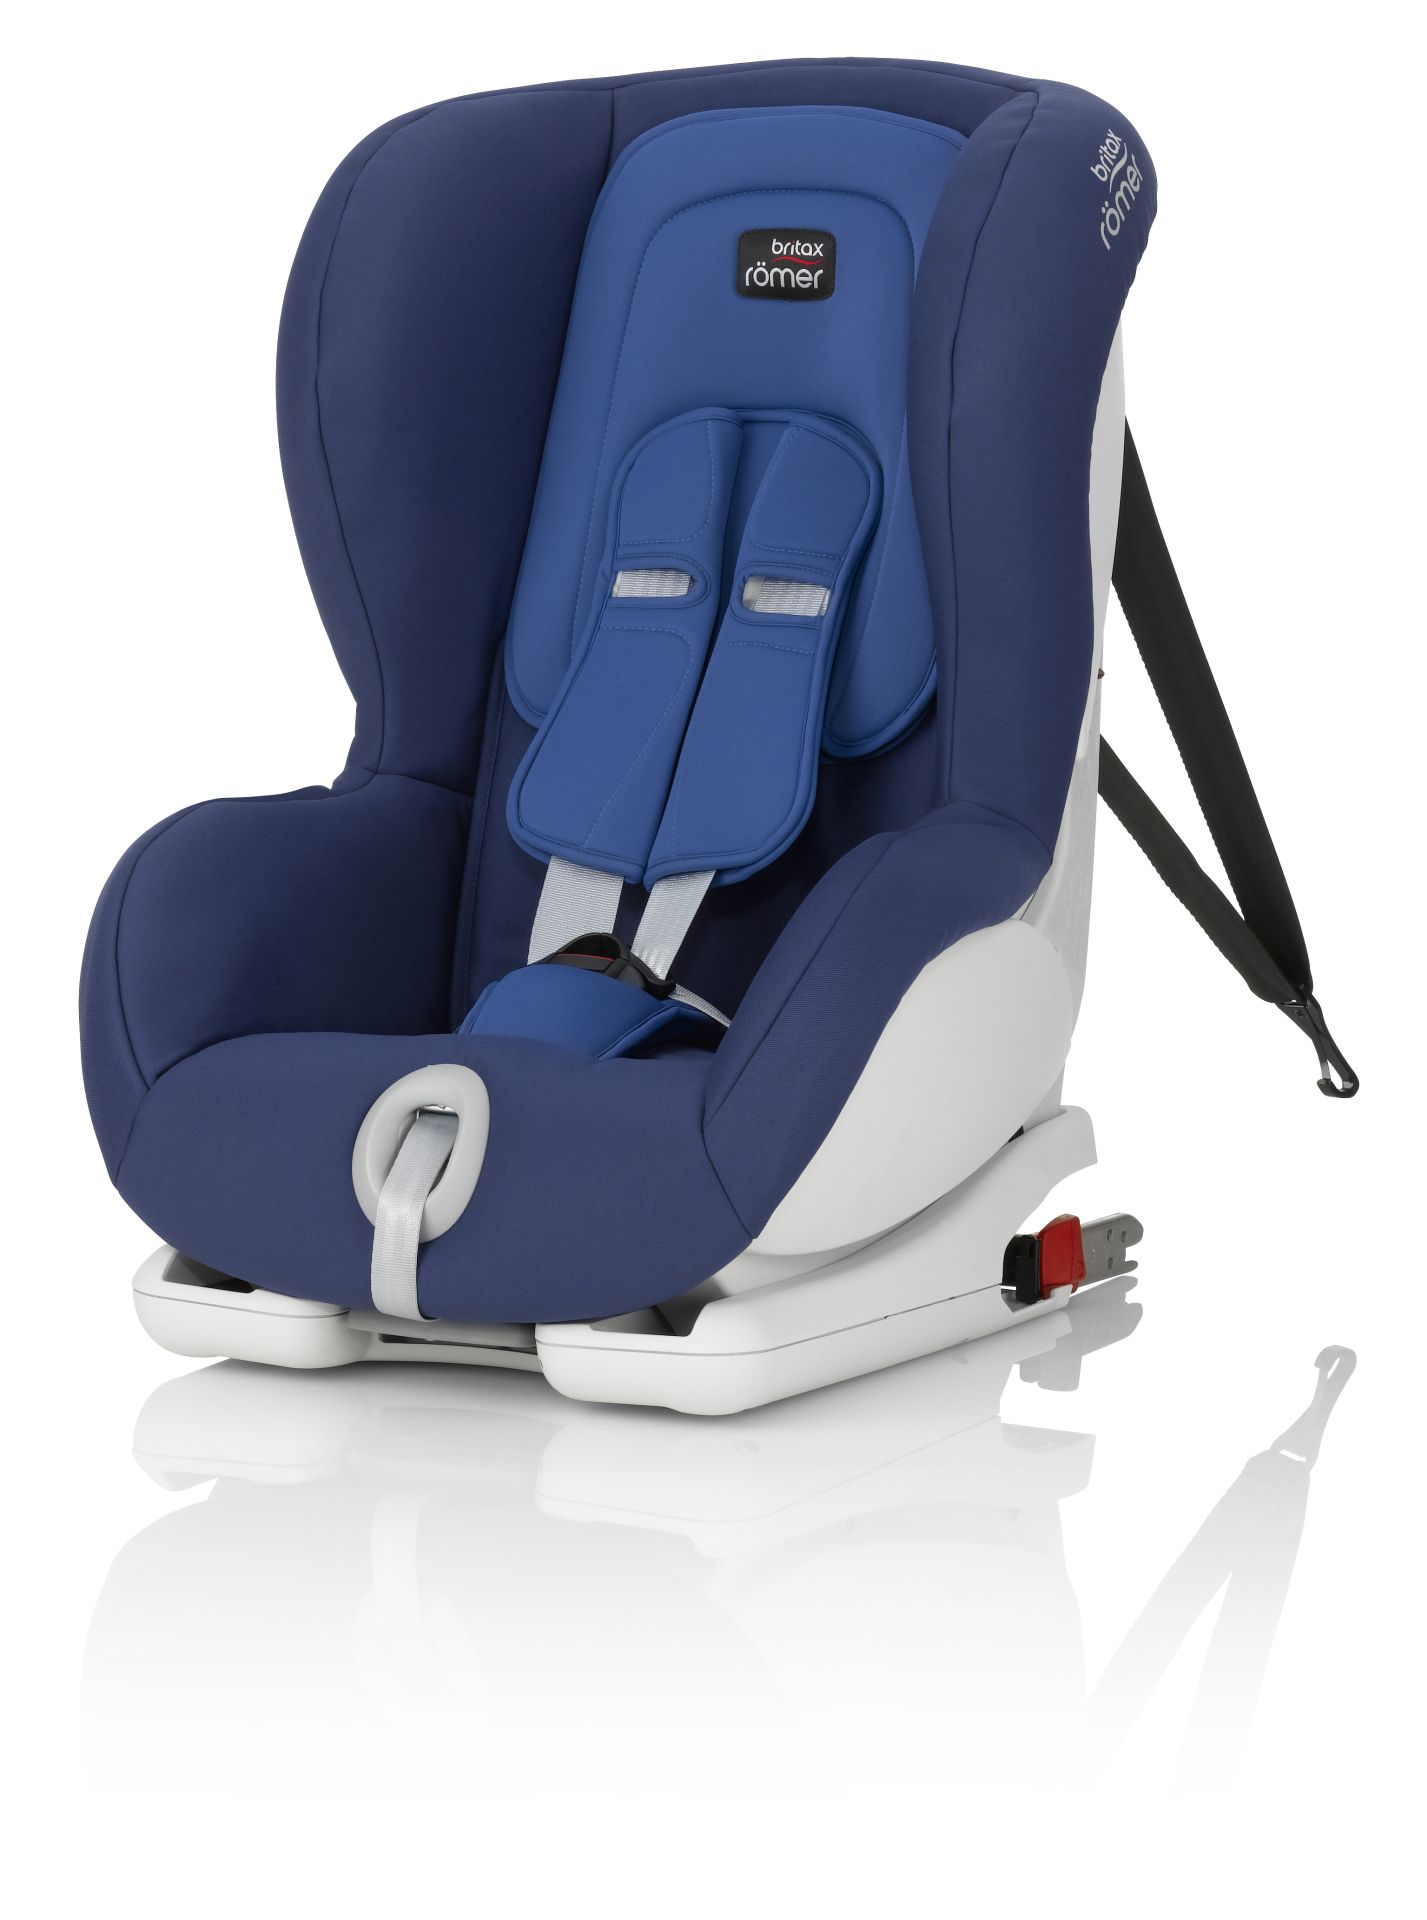 britax r mer child car seat versafix 2018 ocean blue buy at kidsroom car seats isofix. Black Bedroom Furniture Sets. Home Design Ideas